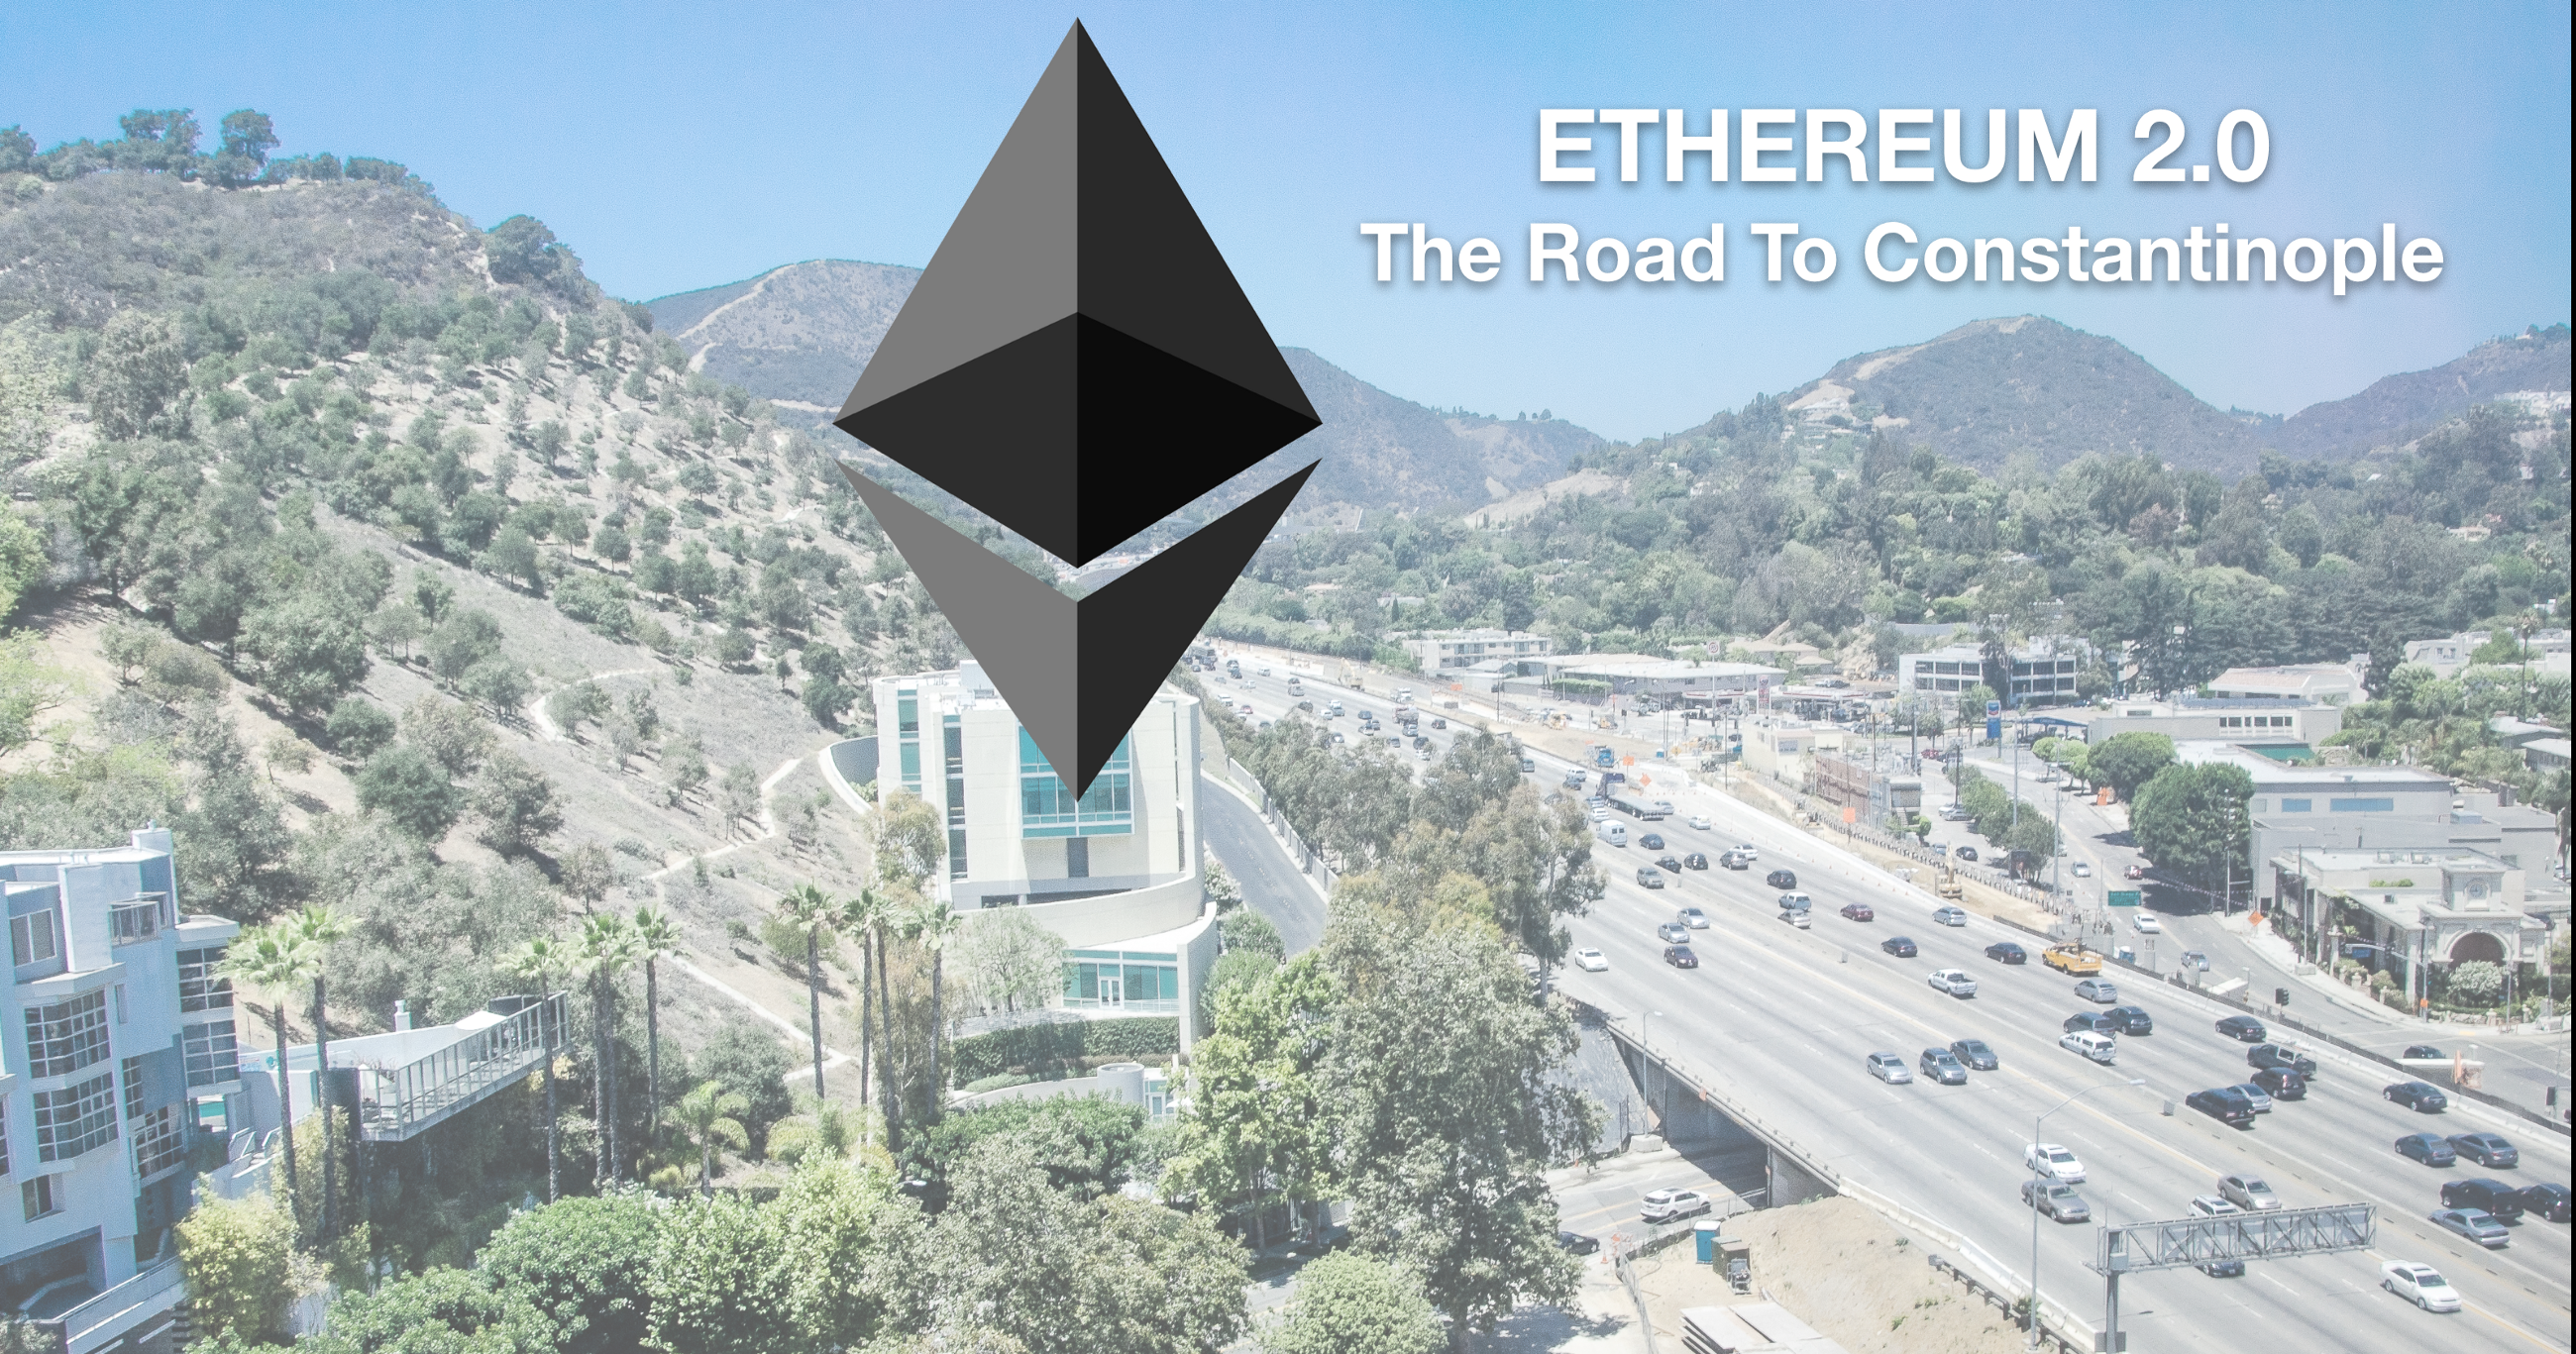 /ethereum-2-0-the-road-to-constantinople-and-beyond-44f8876ef748 feature image